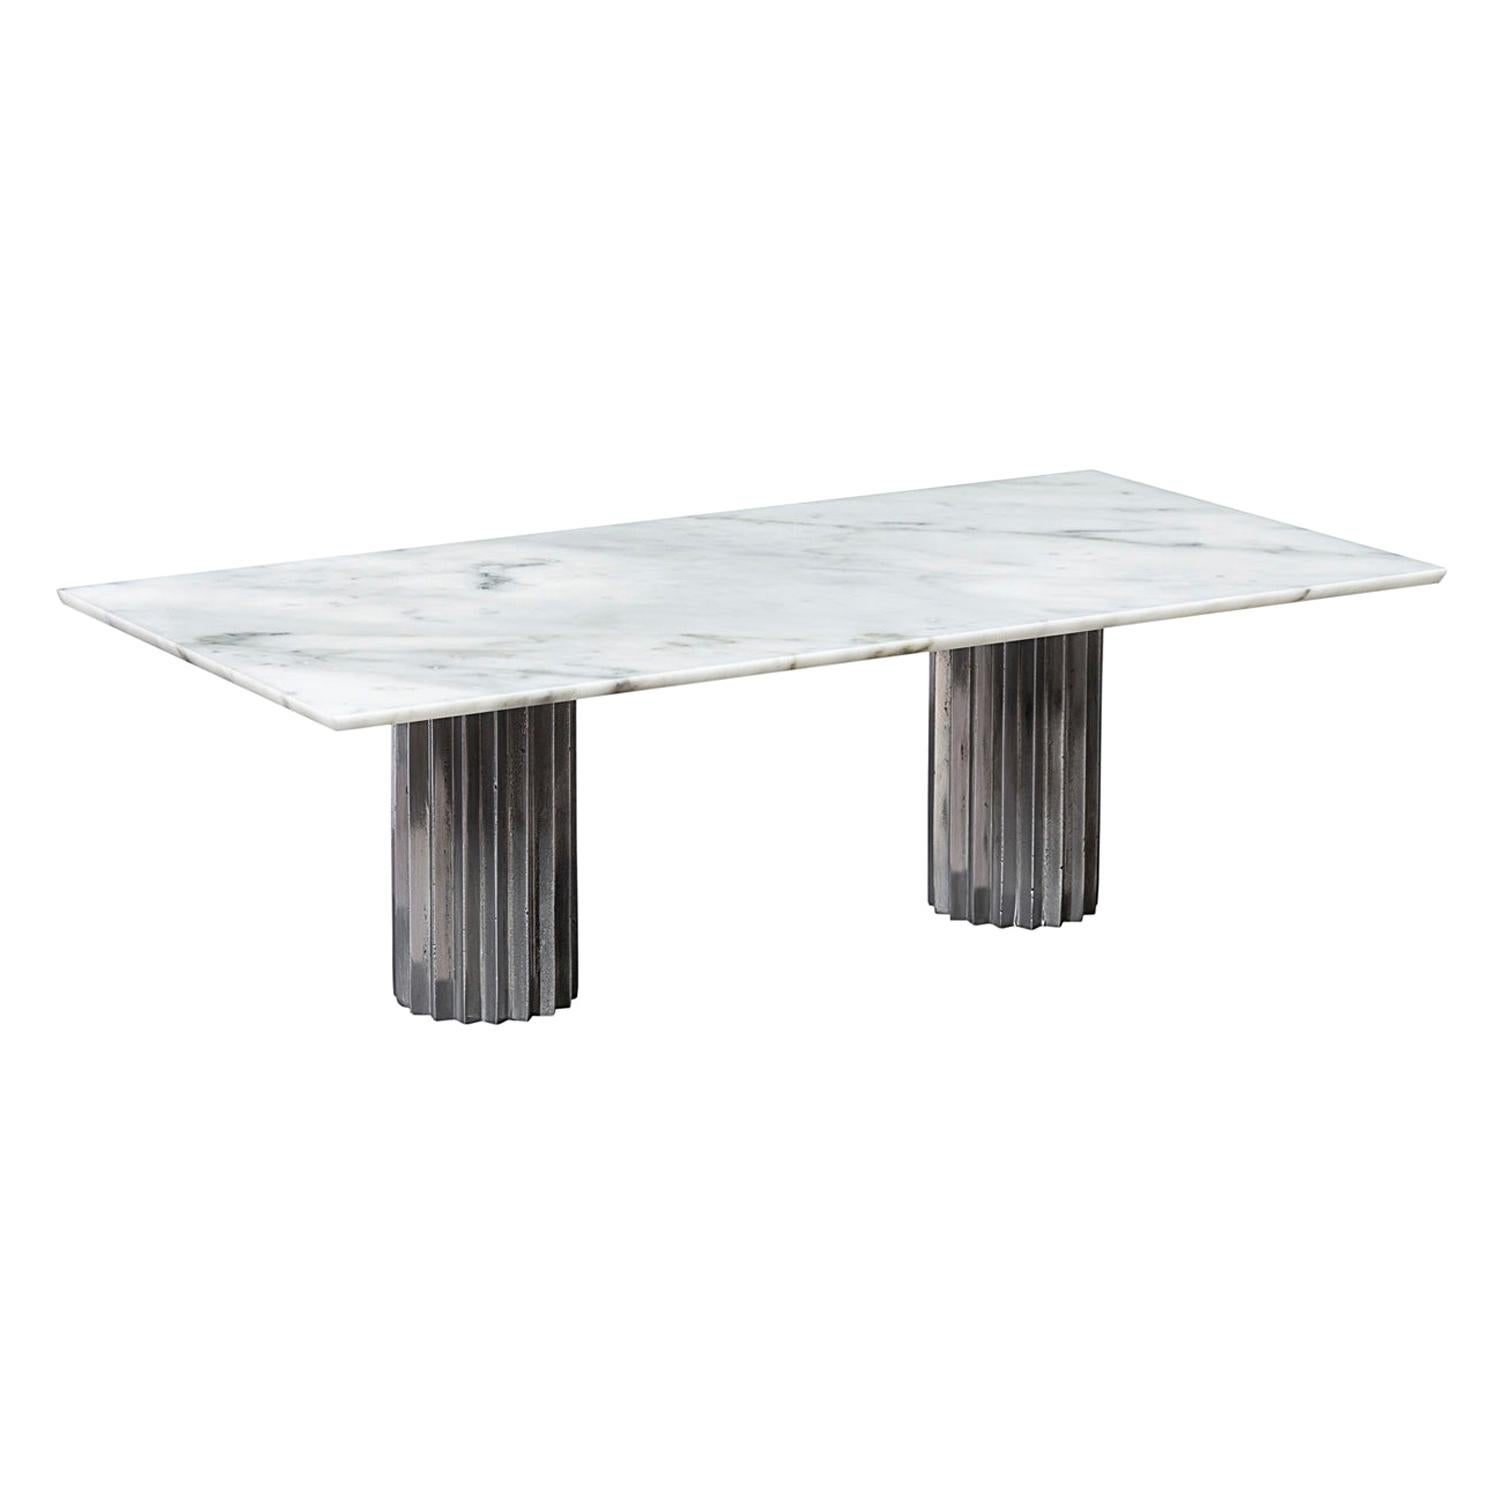 Doris Double Pedestal Dining Table in White Carrara Marble and Cast Aluminum